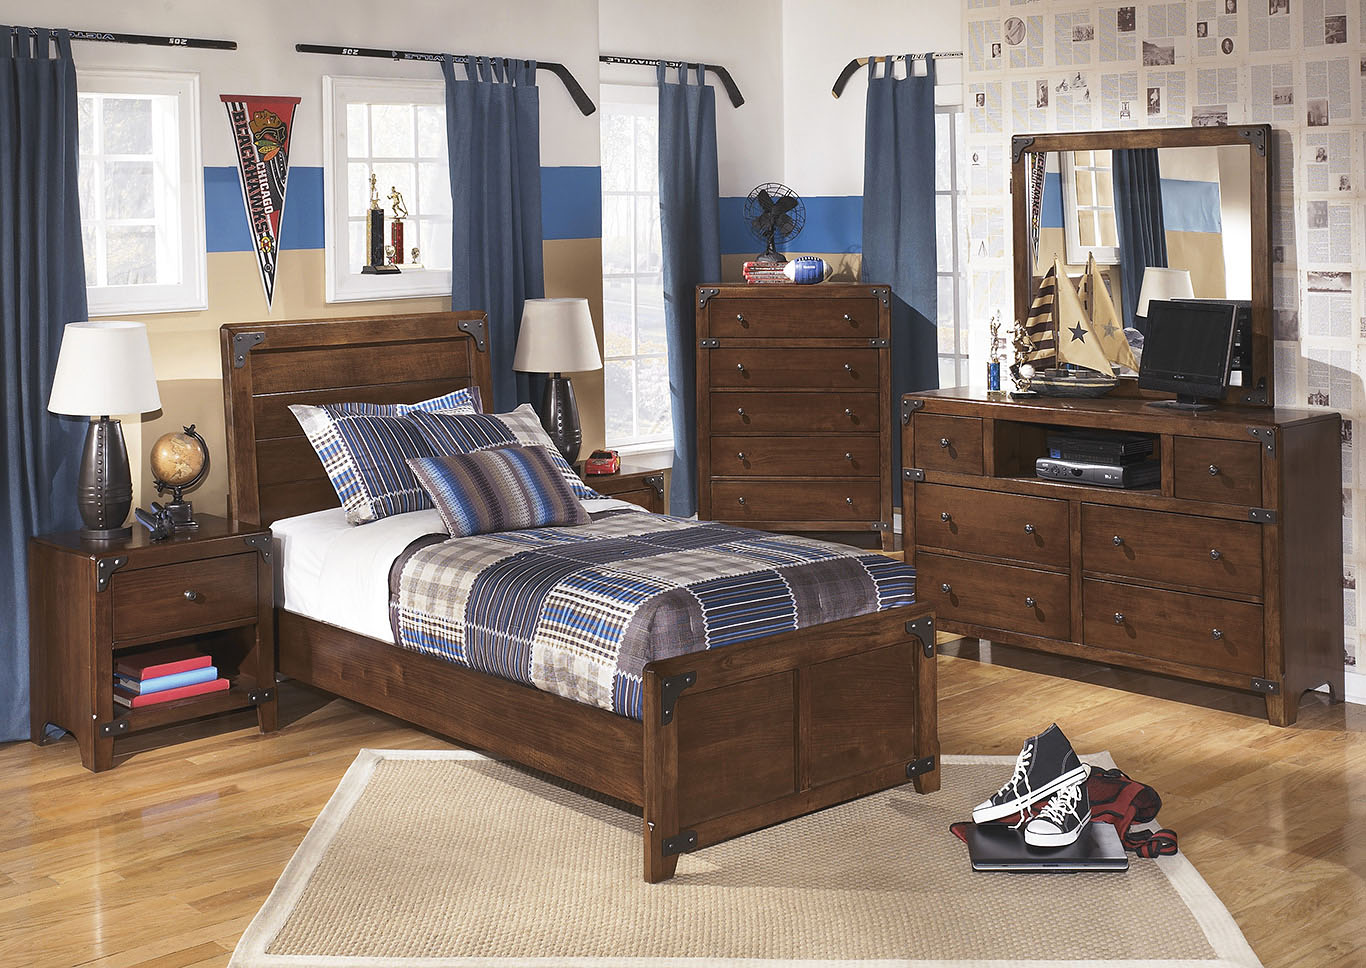 Delburne Full Panel Bed w/Dresser, Mirror, Chest & 2 Nightstands,Signature Design By Ashley